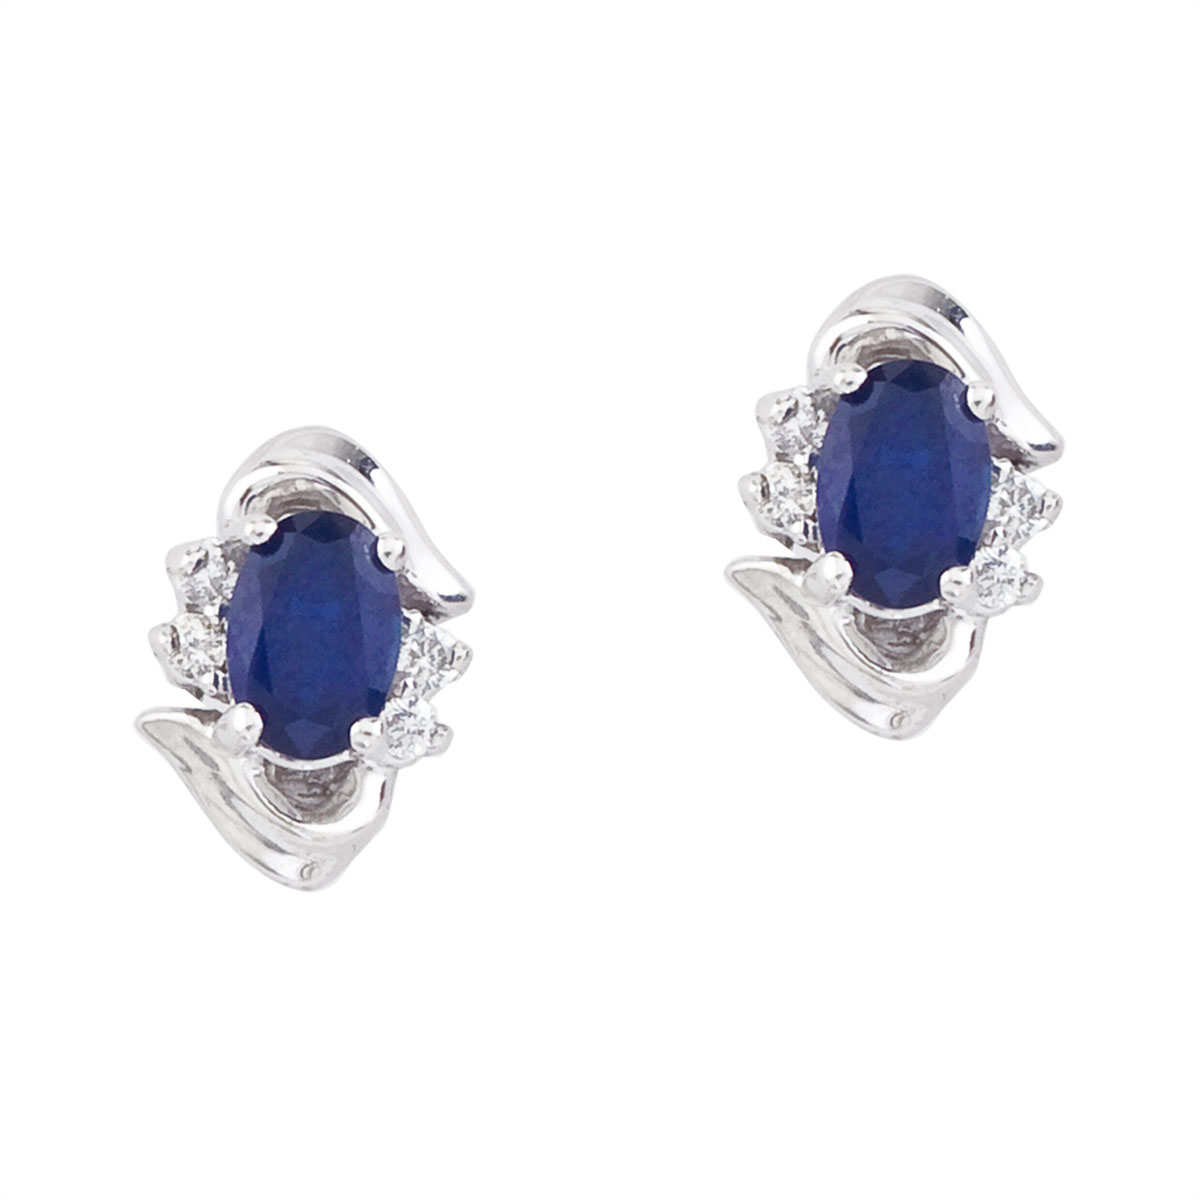 Stunning 14k white gold and sapphire earrings. Featuring natural 6x4 mm oval saphires and .11 tot...